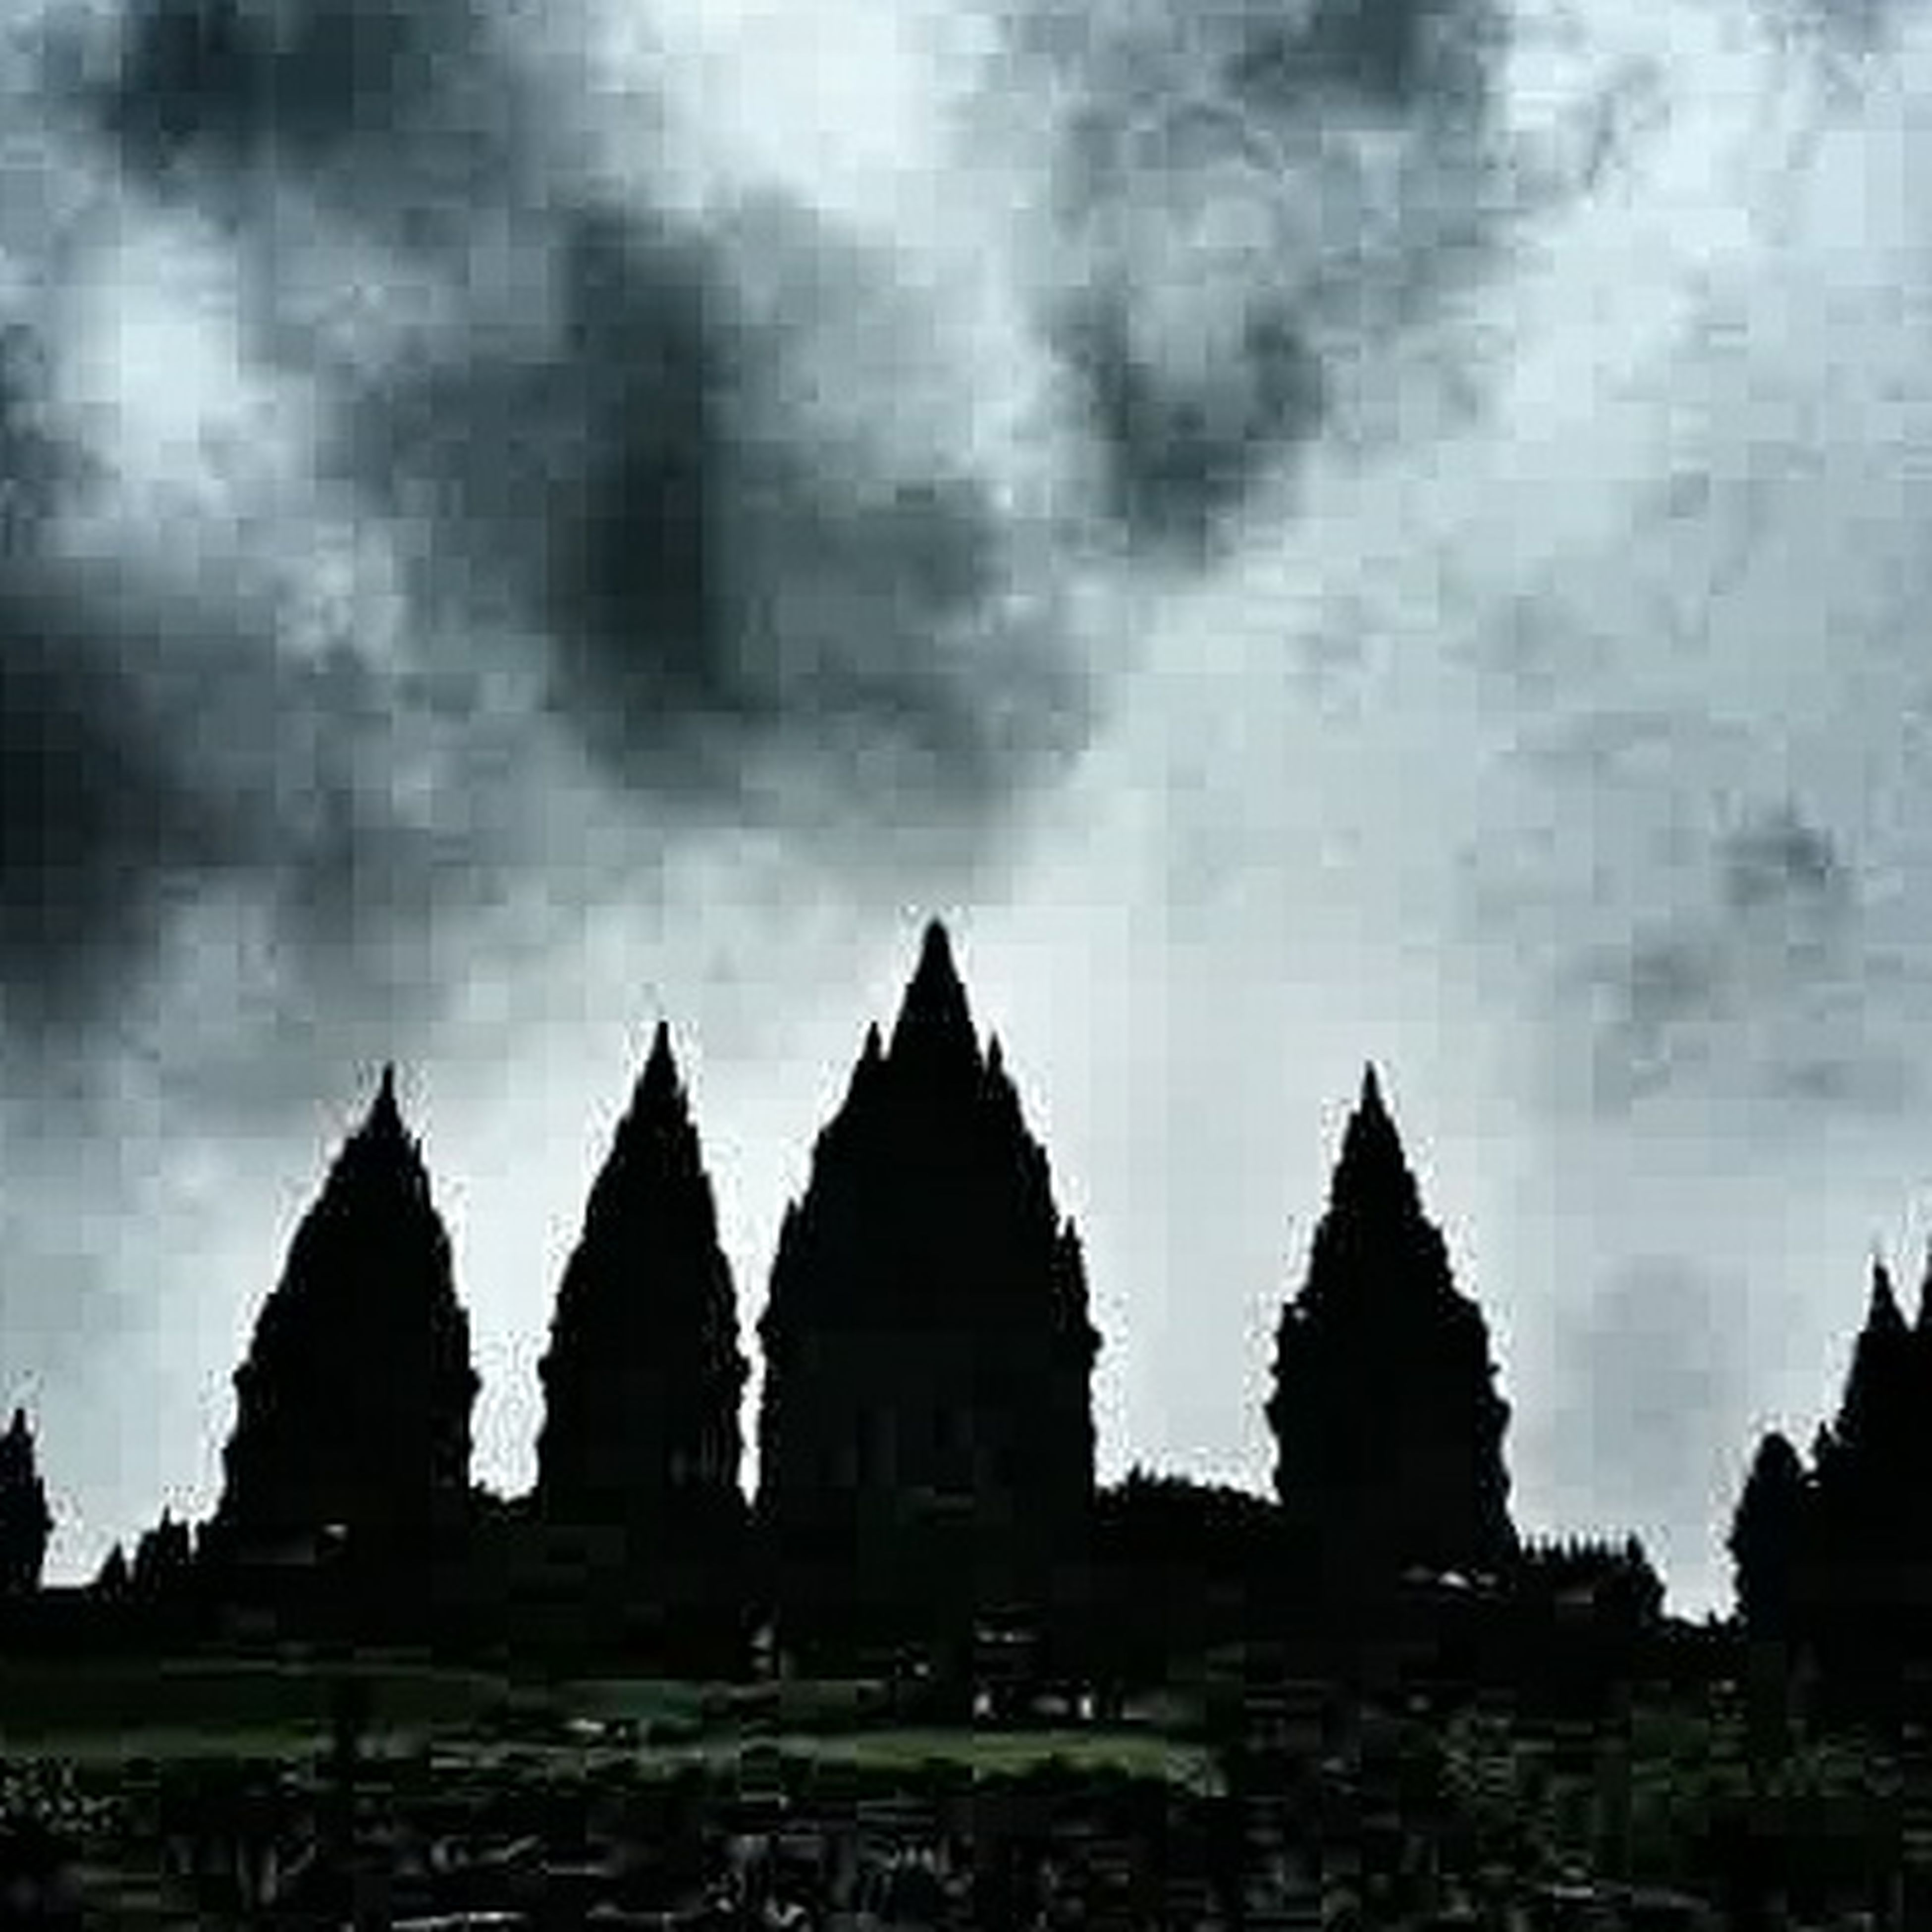 sky, place of worship, religion, spirituality, built structure, architecture, cloud - sky, temple - building, silhouette, cloudy, weather, dusk, building exterior, history, outdoors, tranquility, in a row, travel destinations, nature, travel